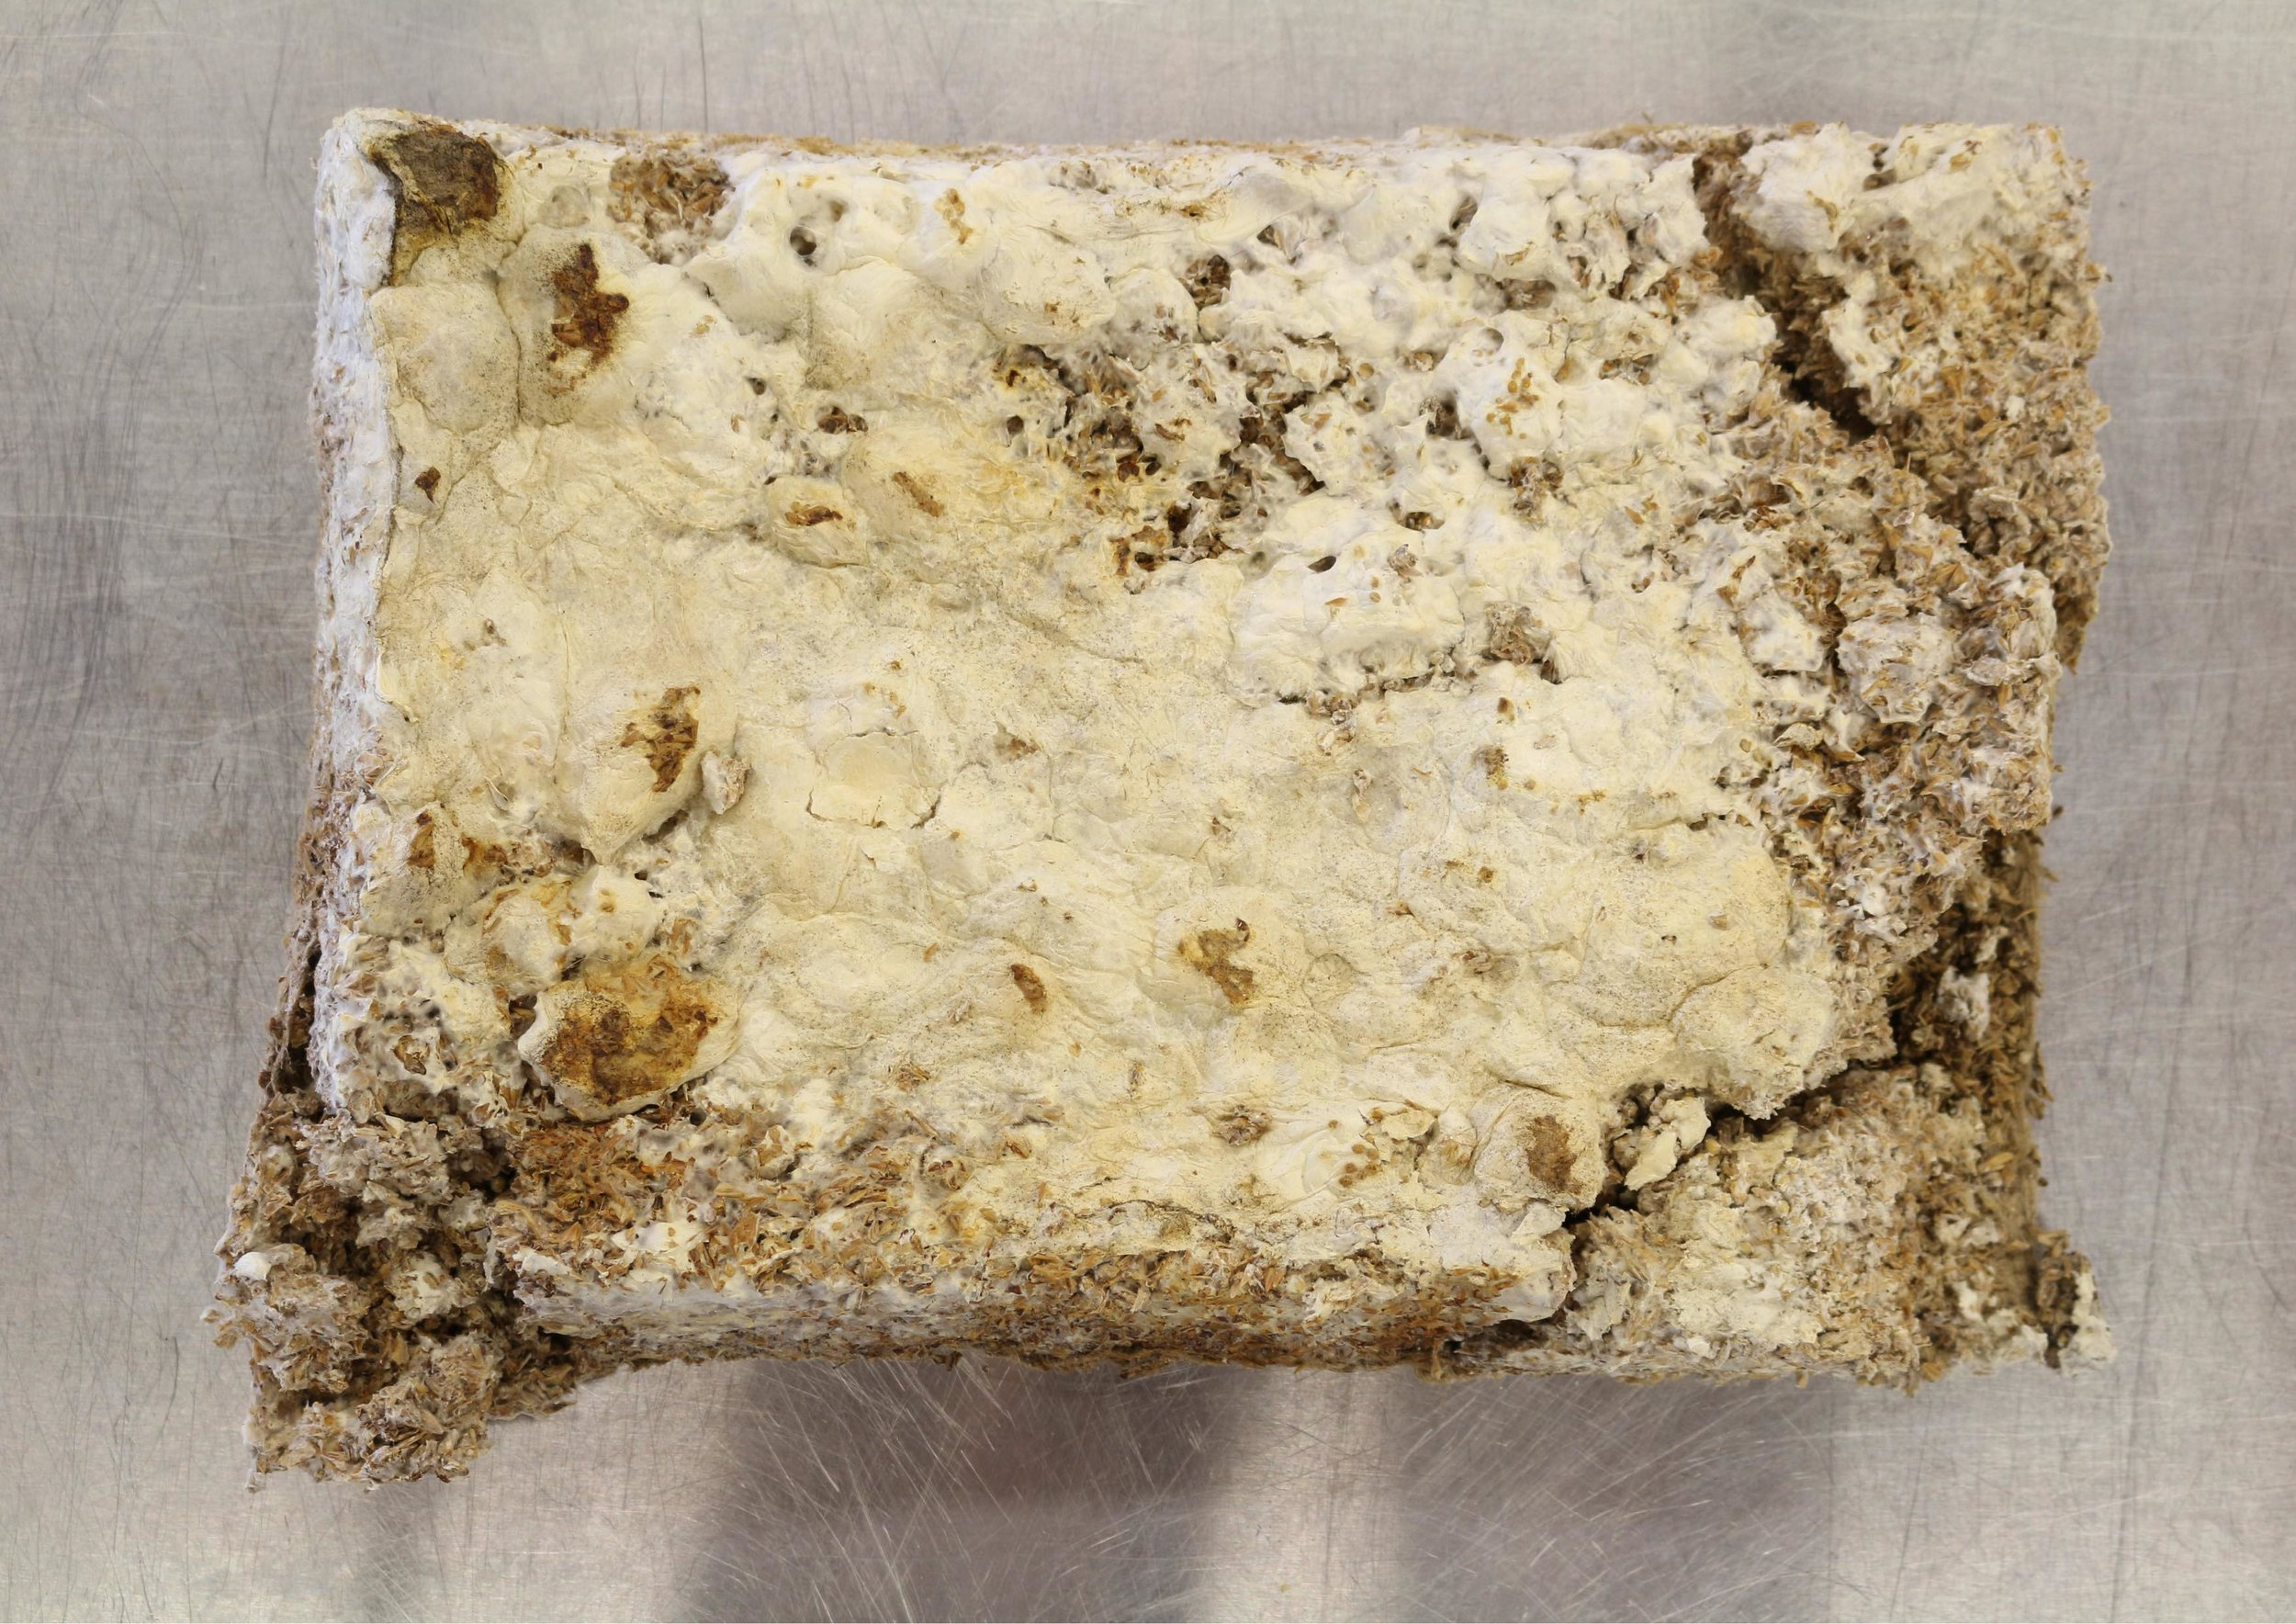 Early prototype: Insulation panel made from waste beer grain and mycelium spawn